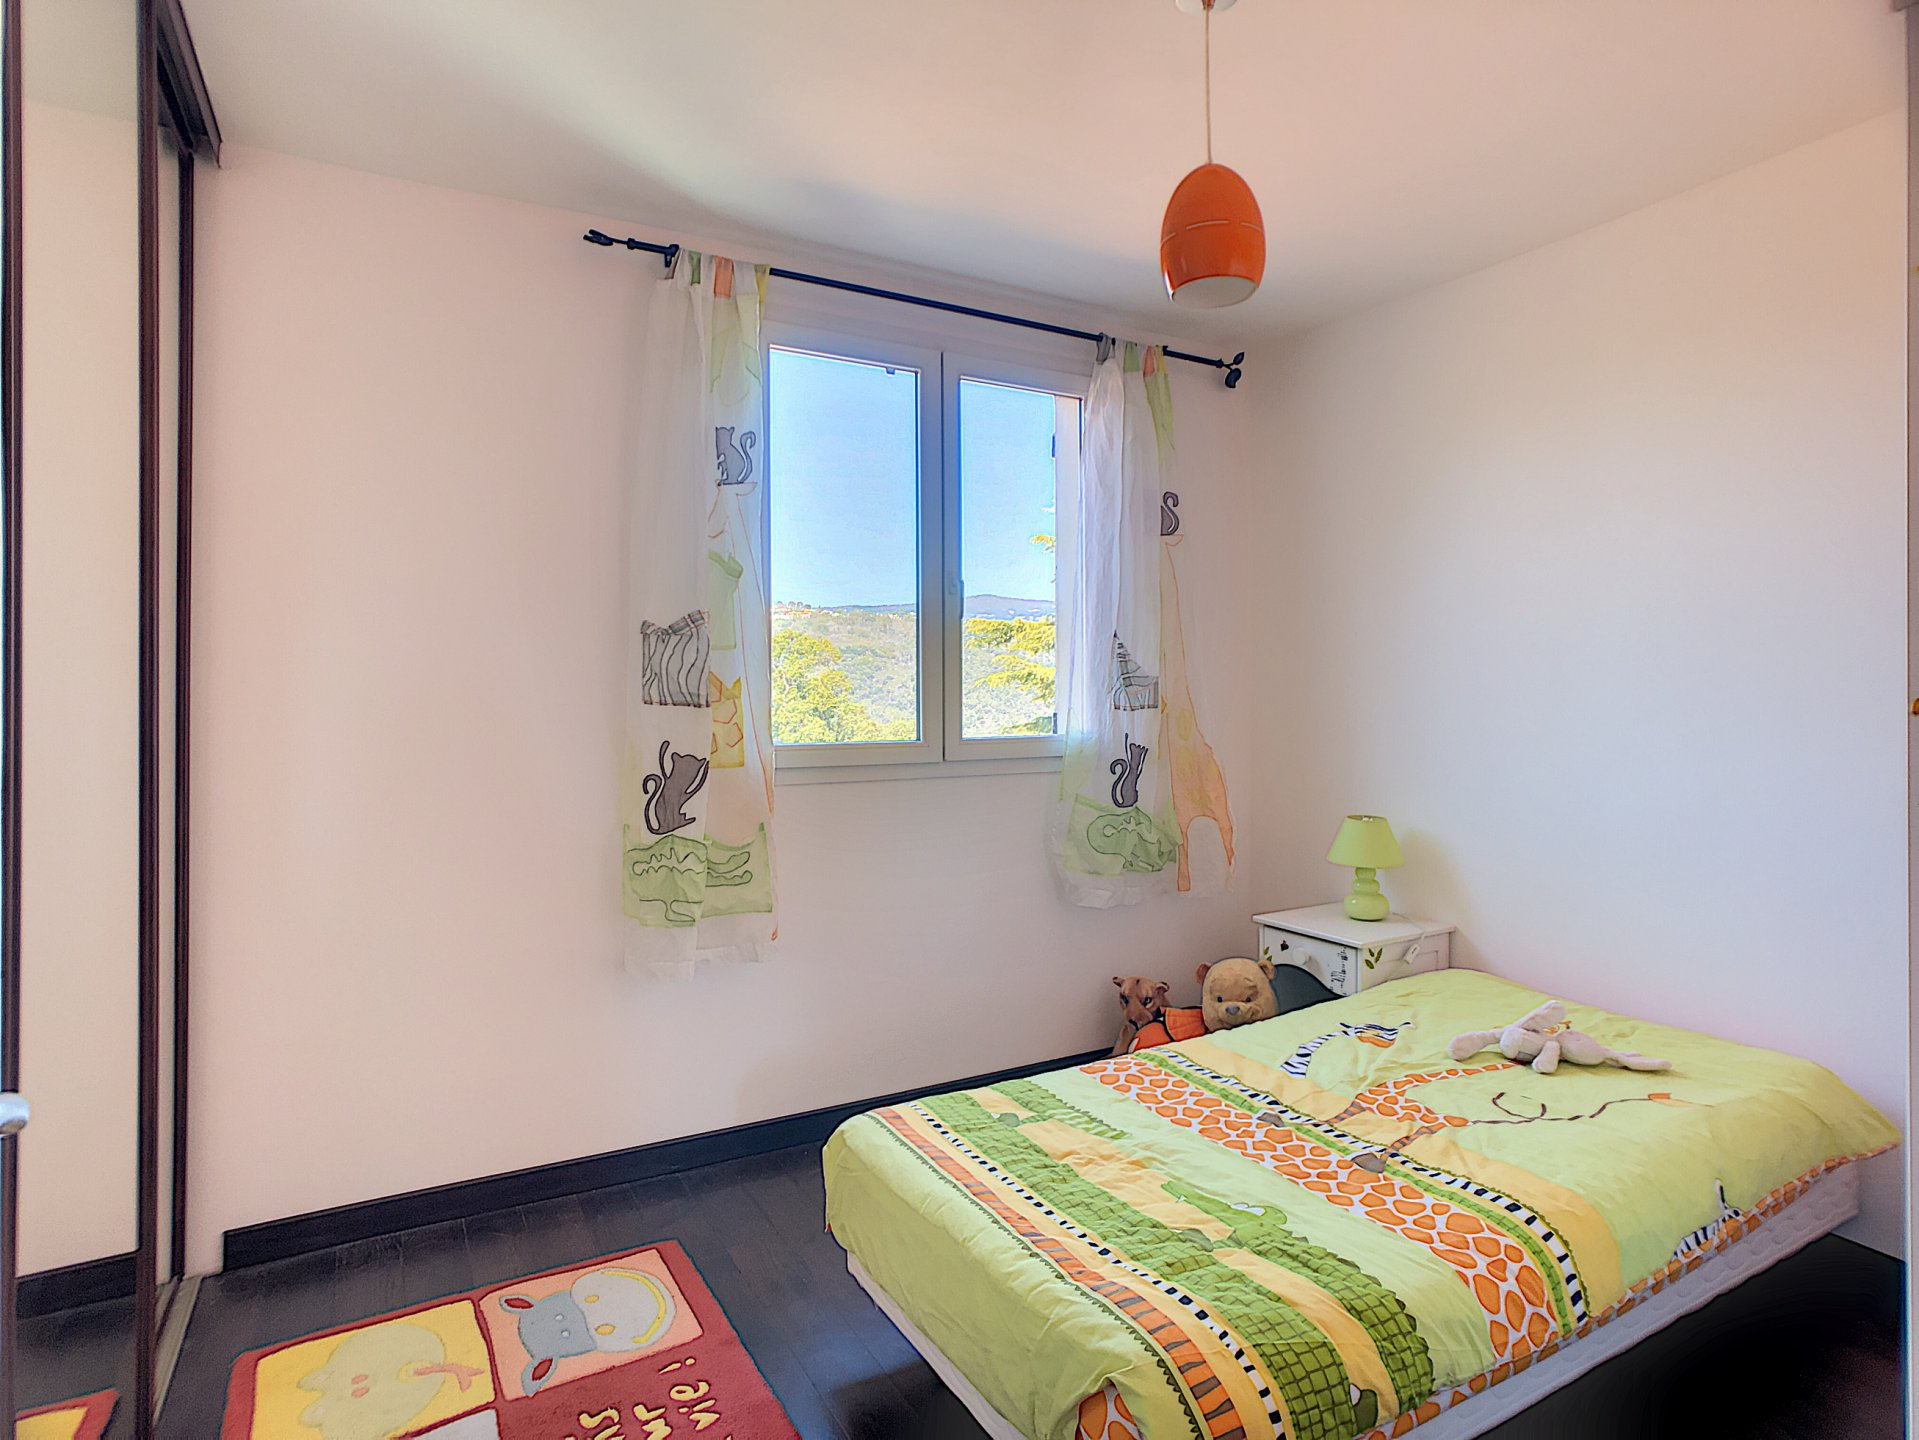 Family house, 6 Rooms in a peaceful environment